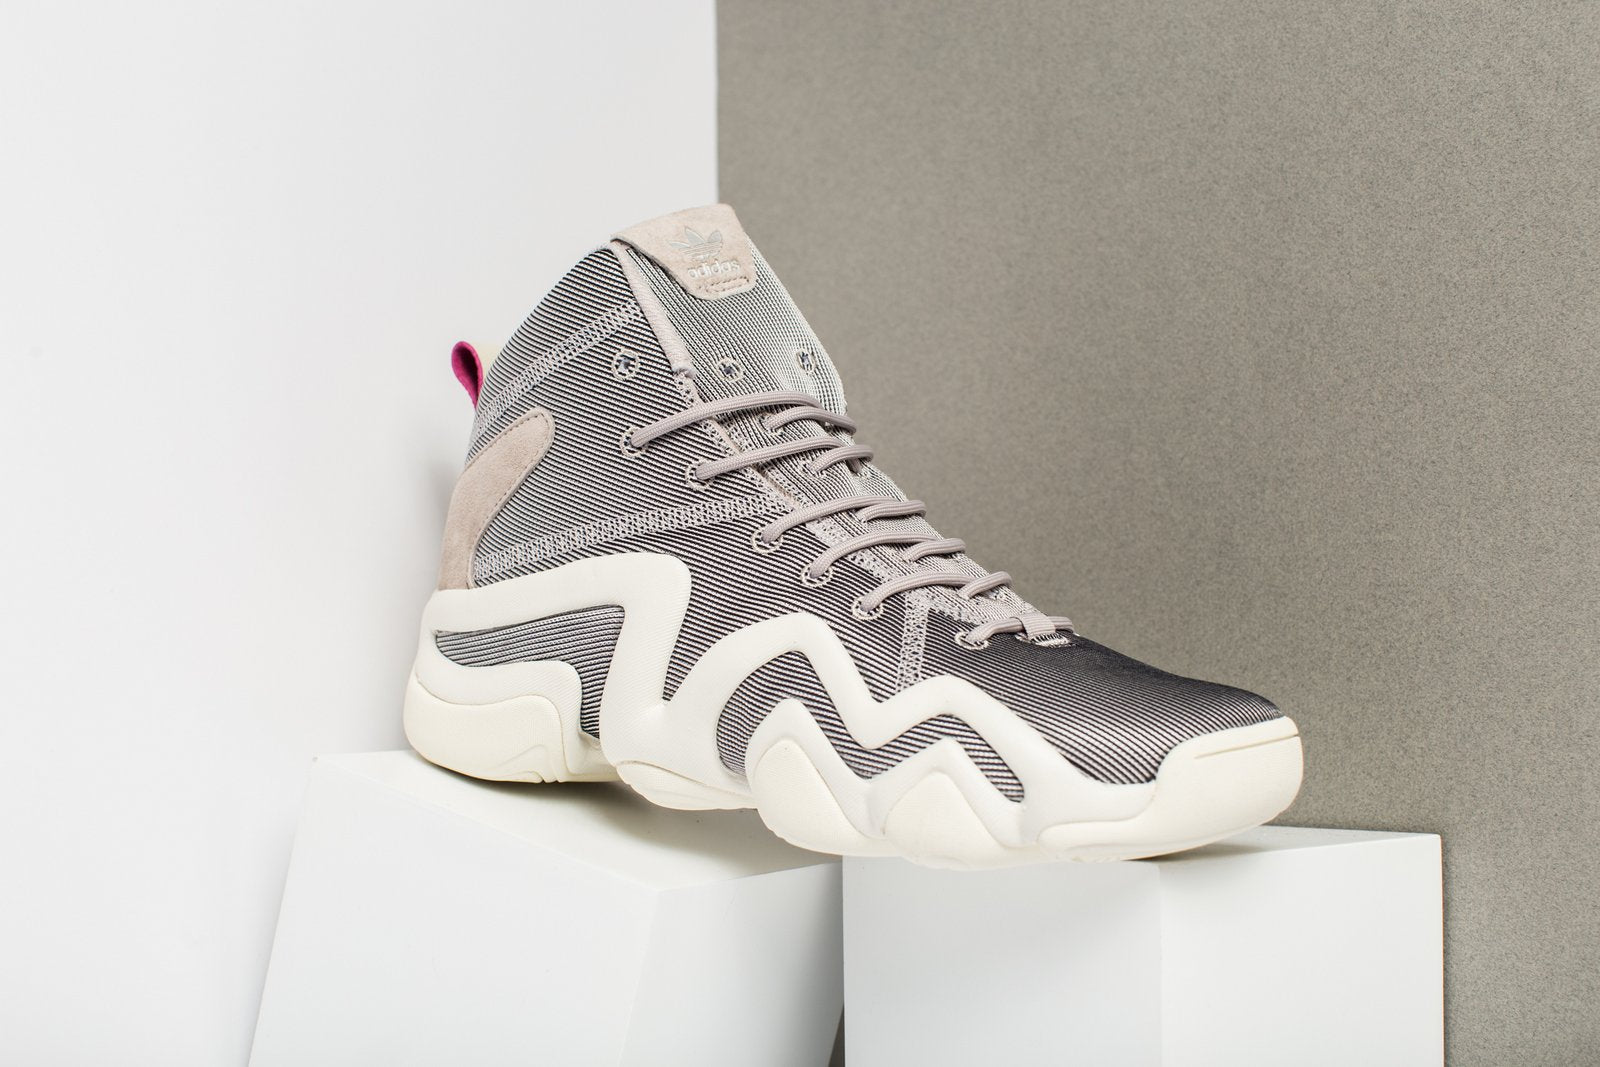 ADIDAS CRAZY 8 ADVANCE WOMENS